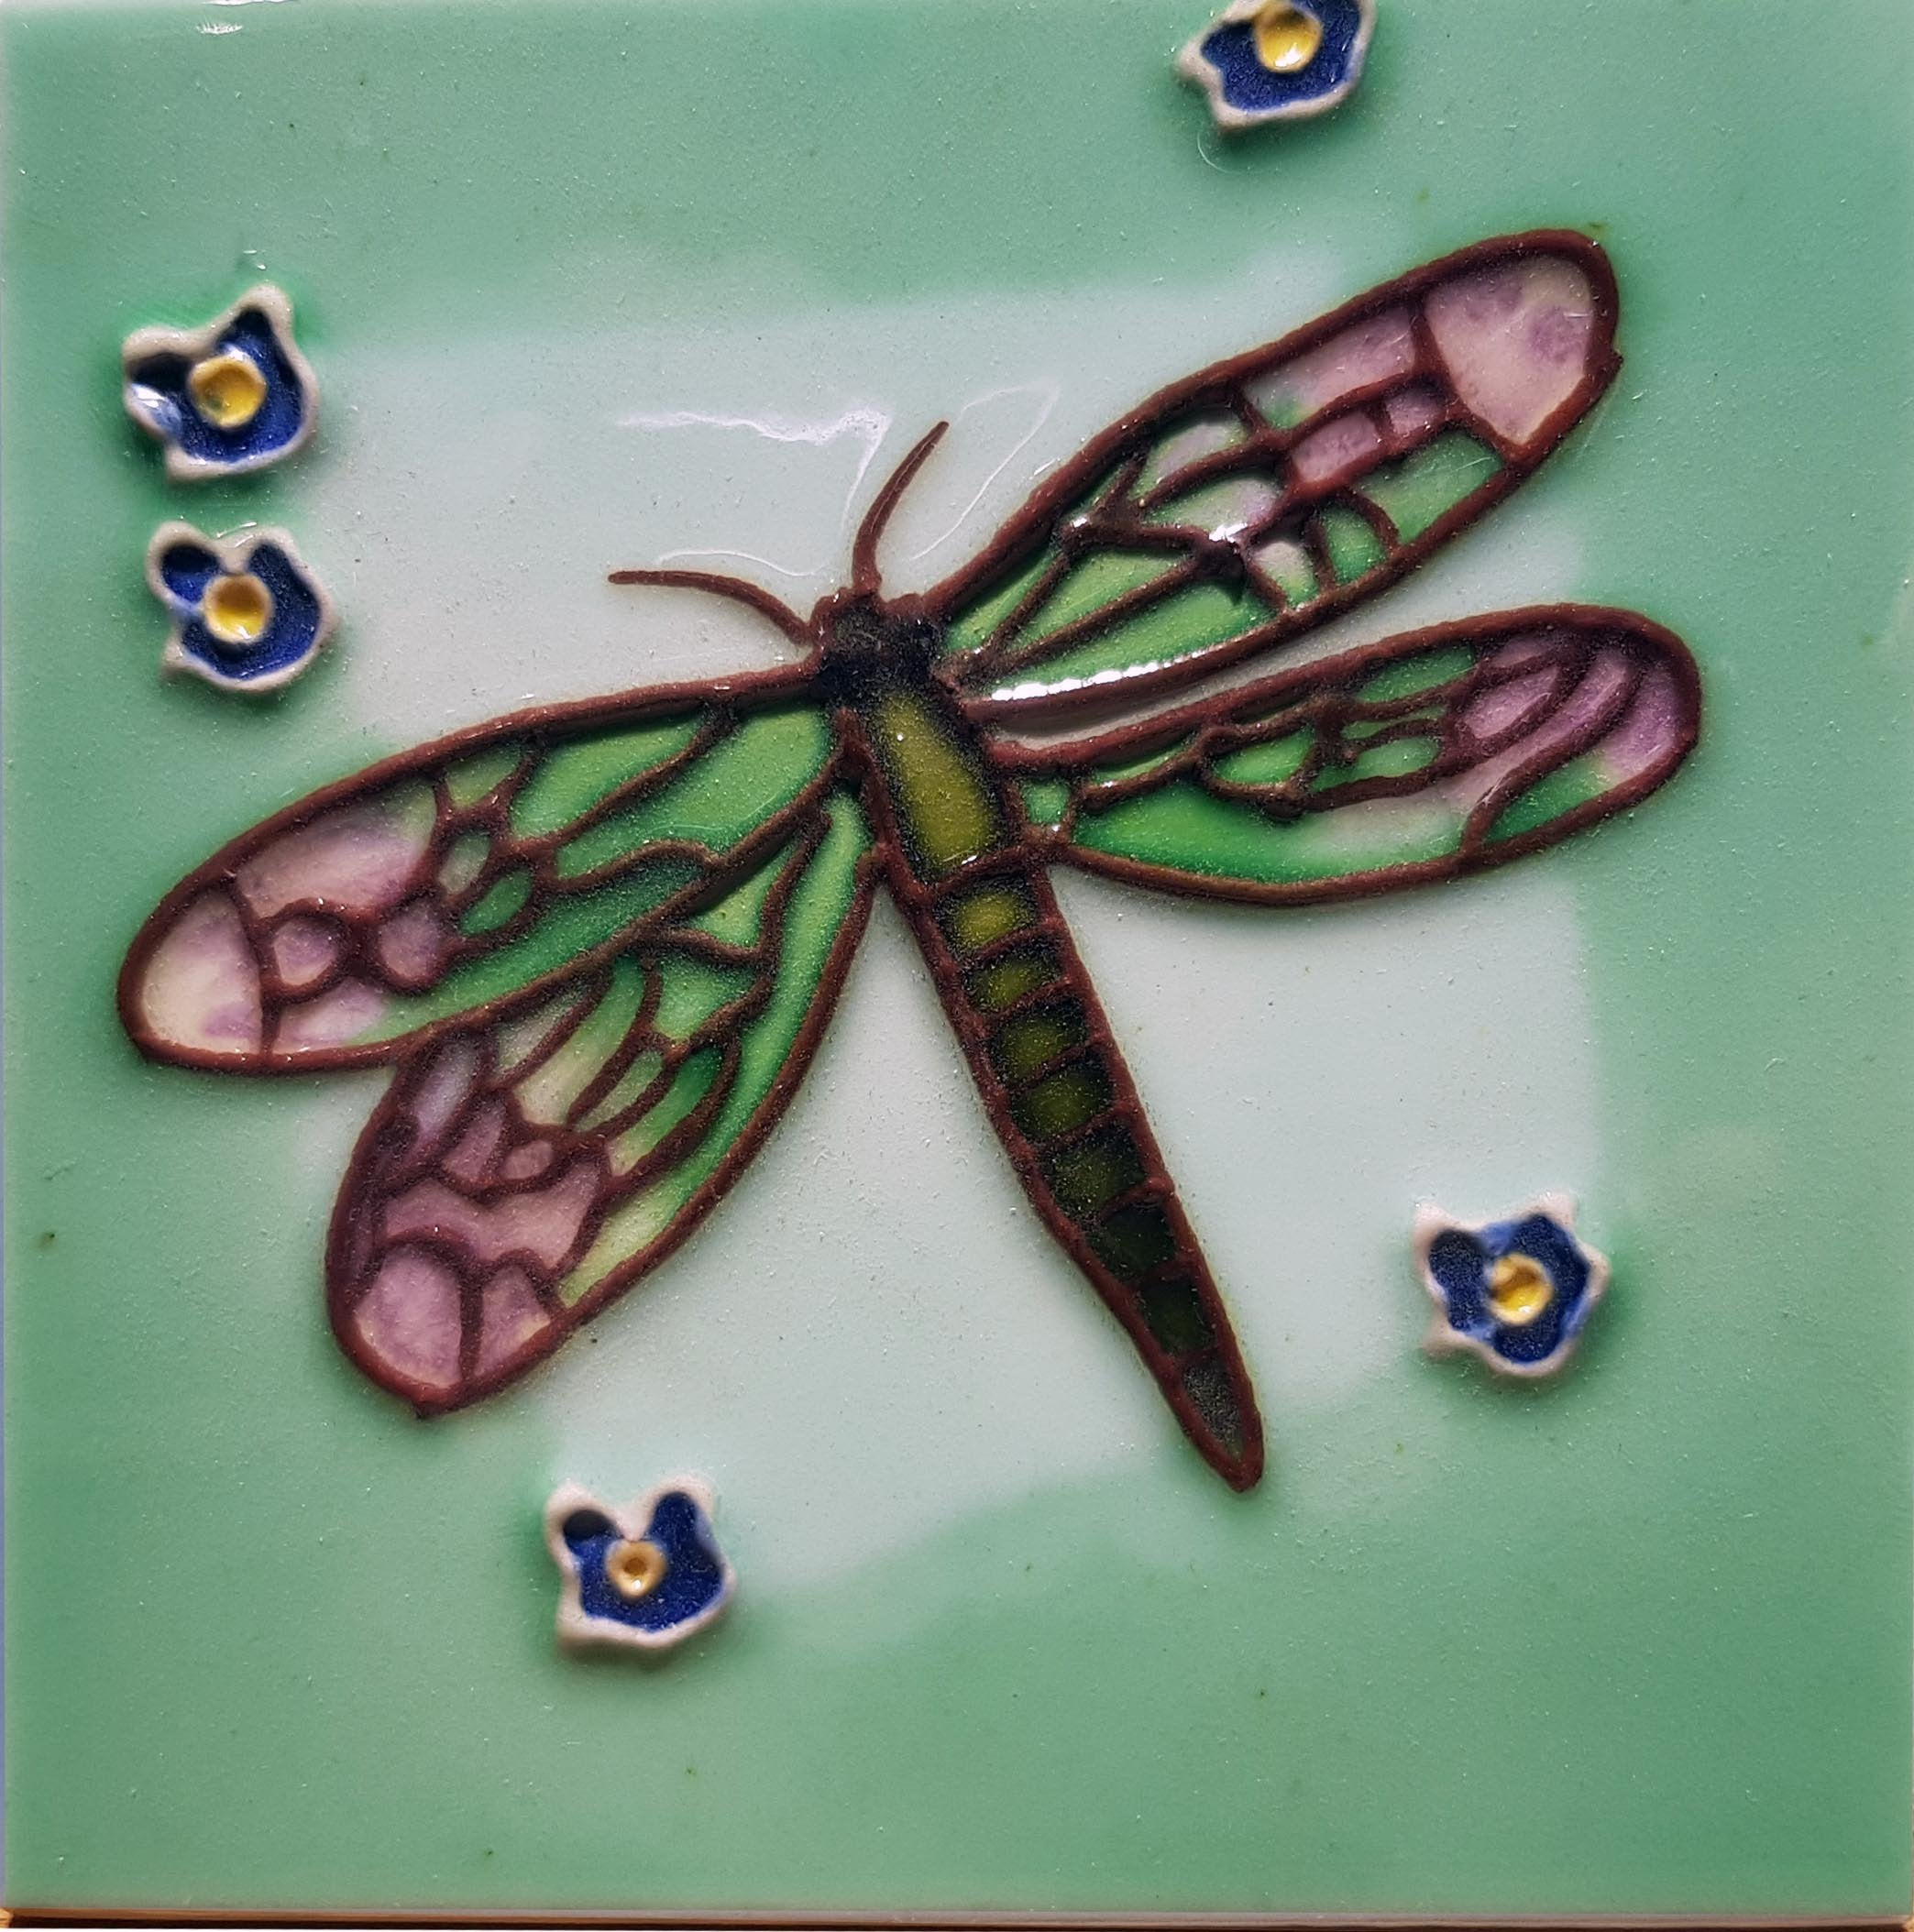 1011 Dragonfly with Blue Flower 10cm x 10cm Ceramic Tile